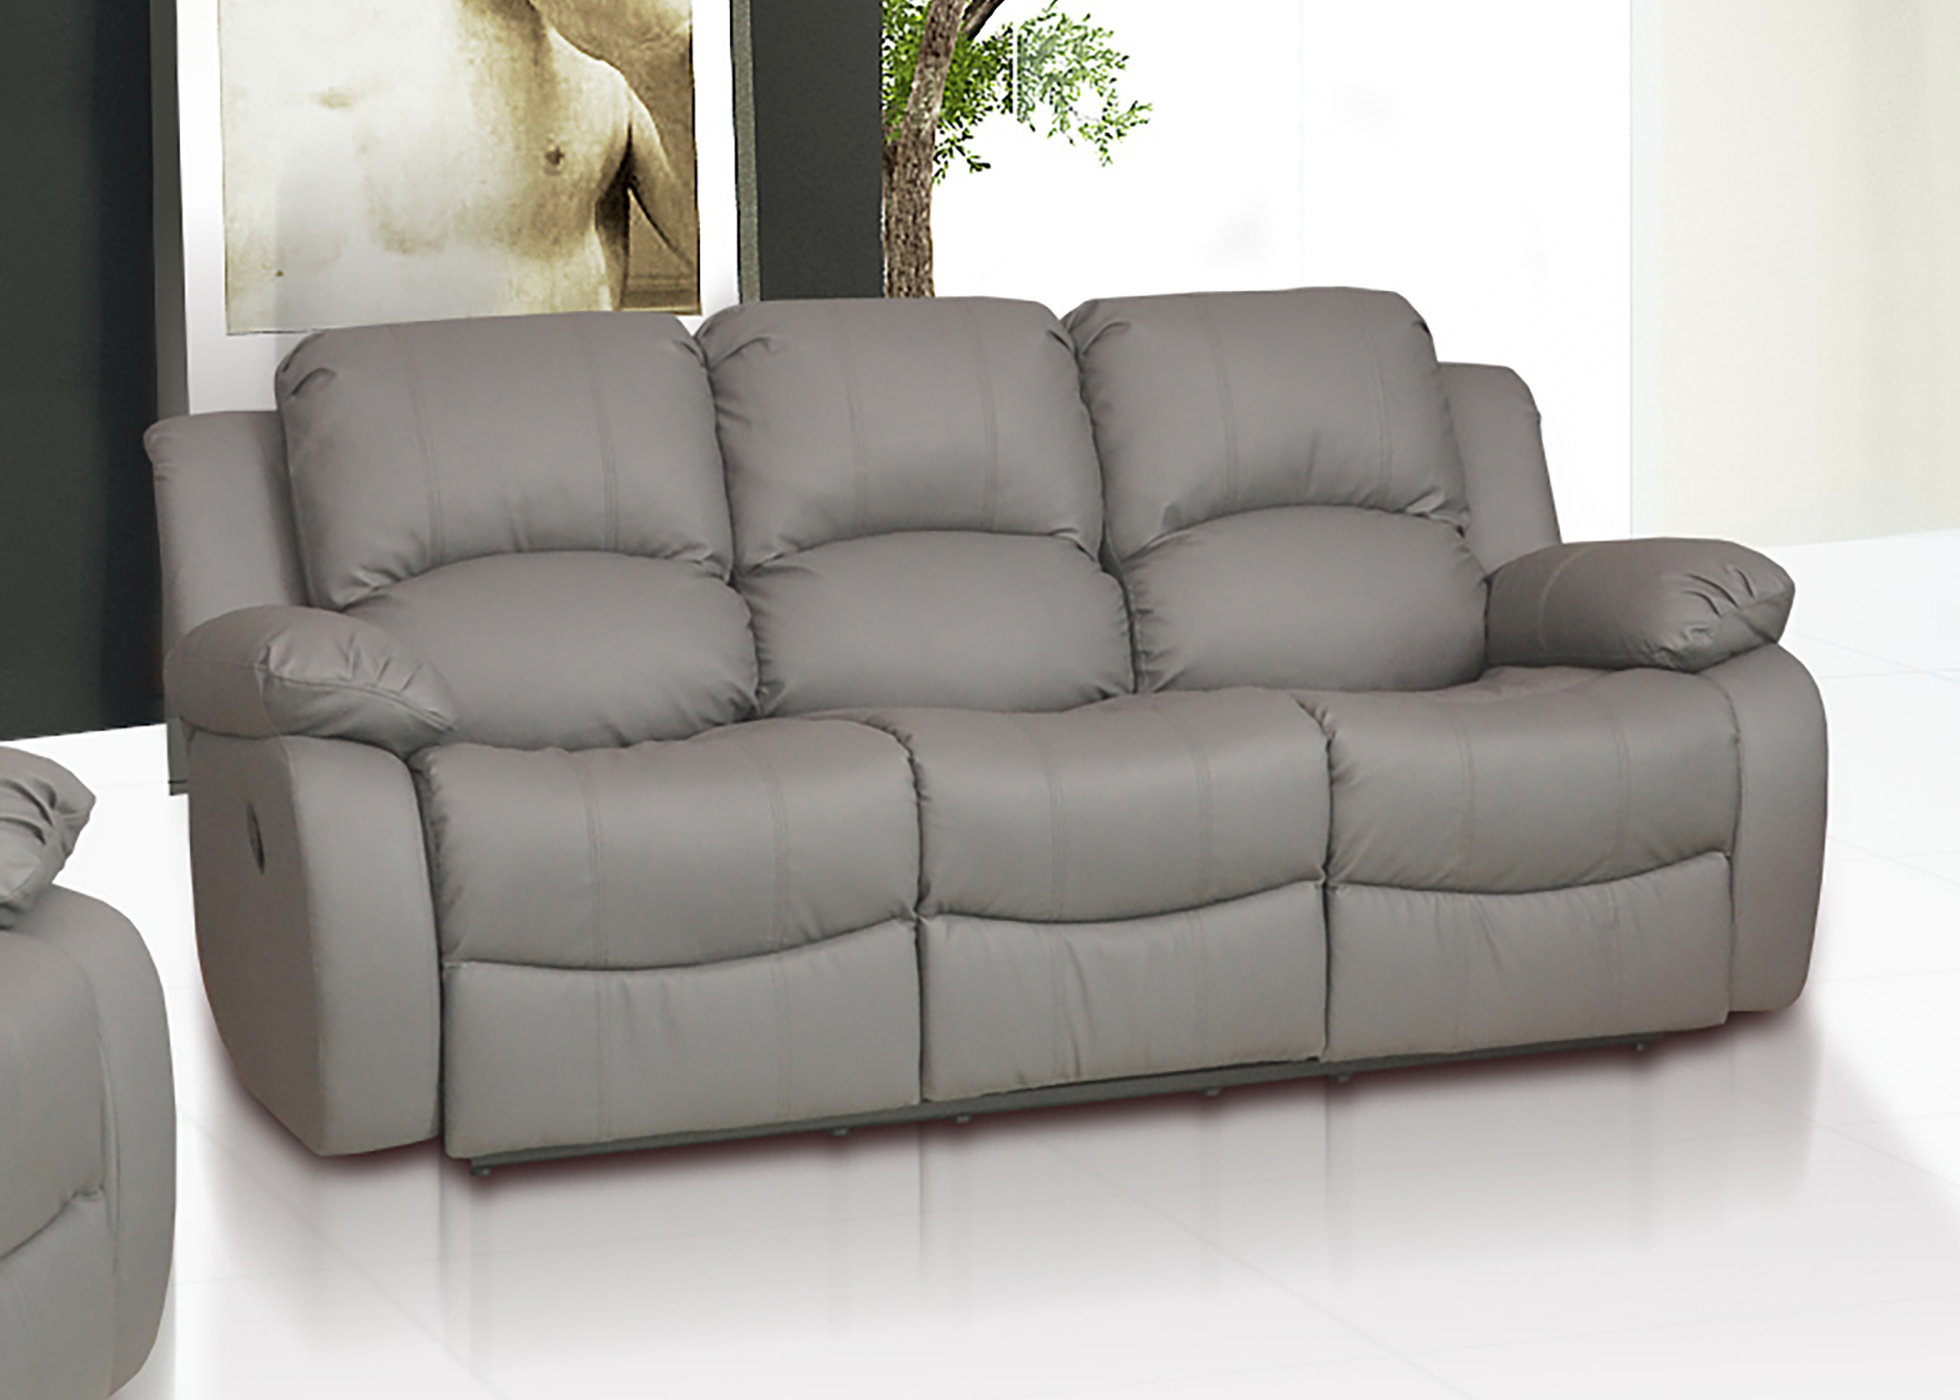 Valencia 3 1 leather recliner sofa suite grey for Grey leather sectional sofa with recliners